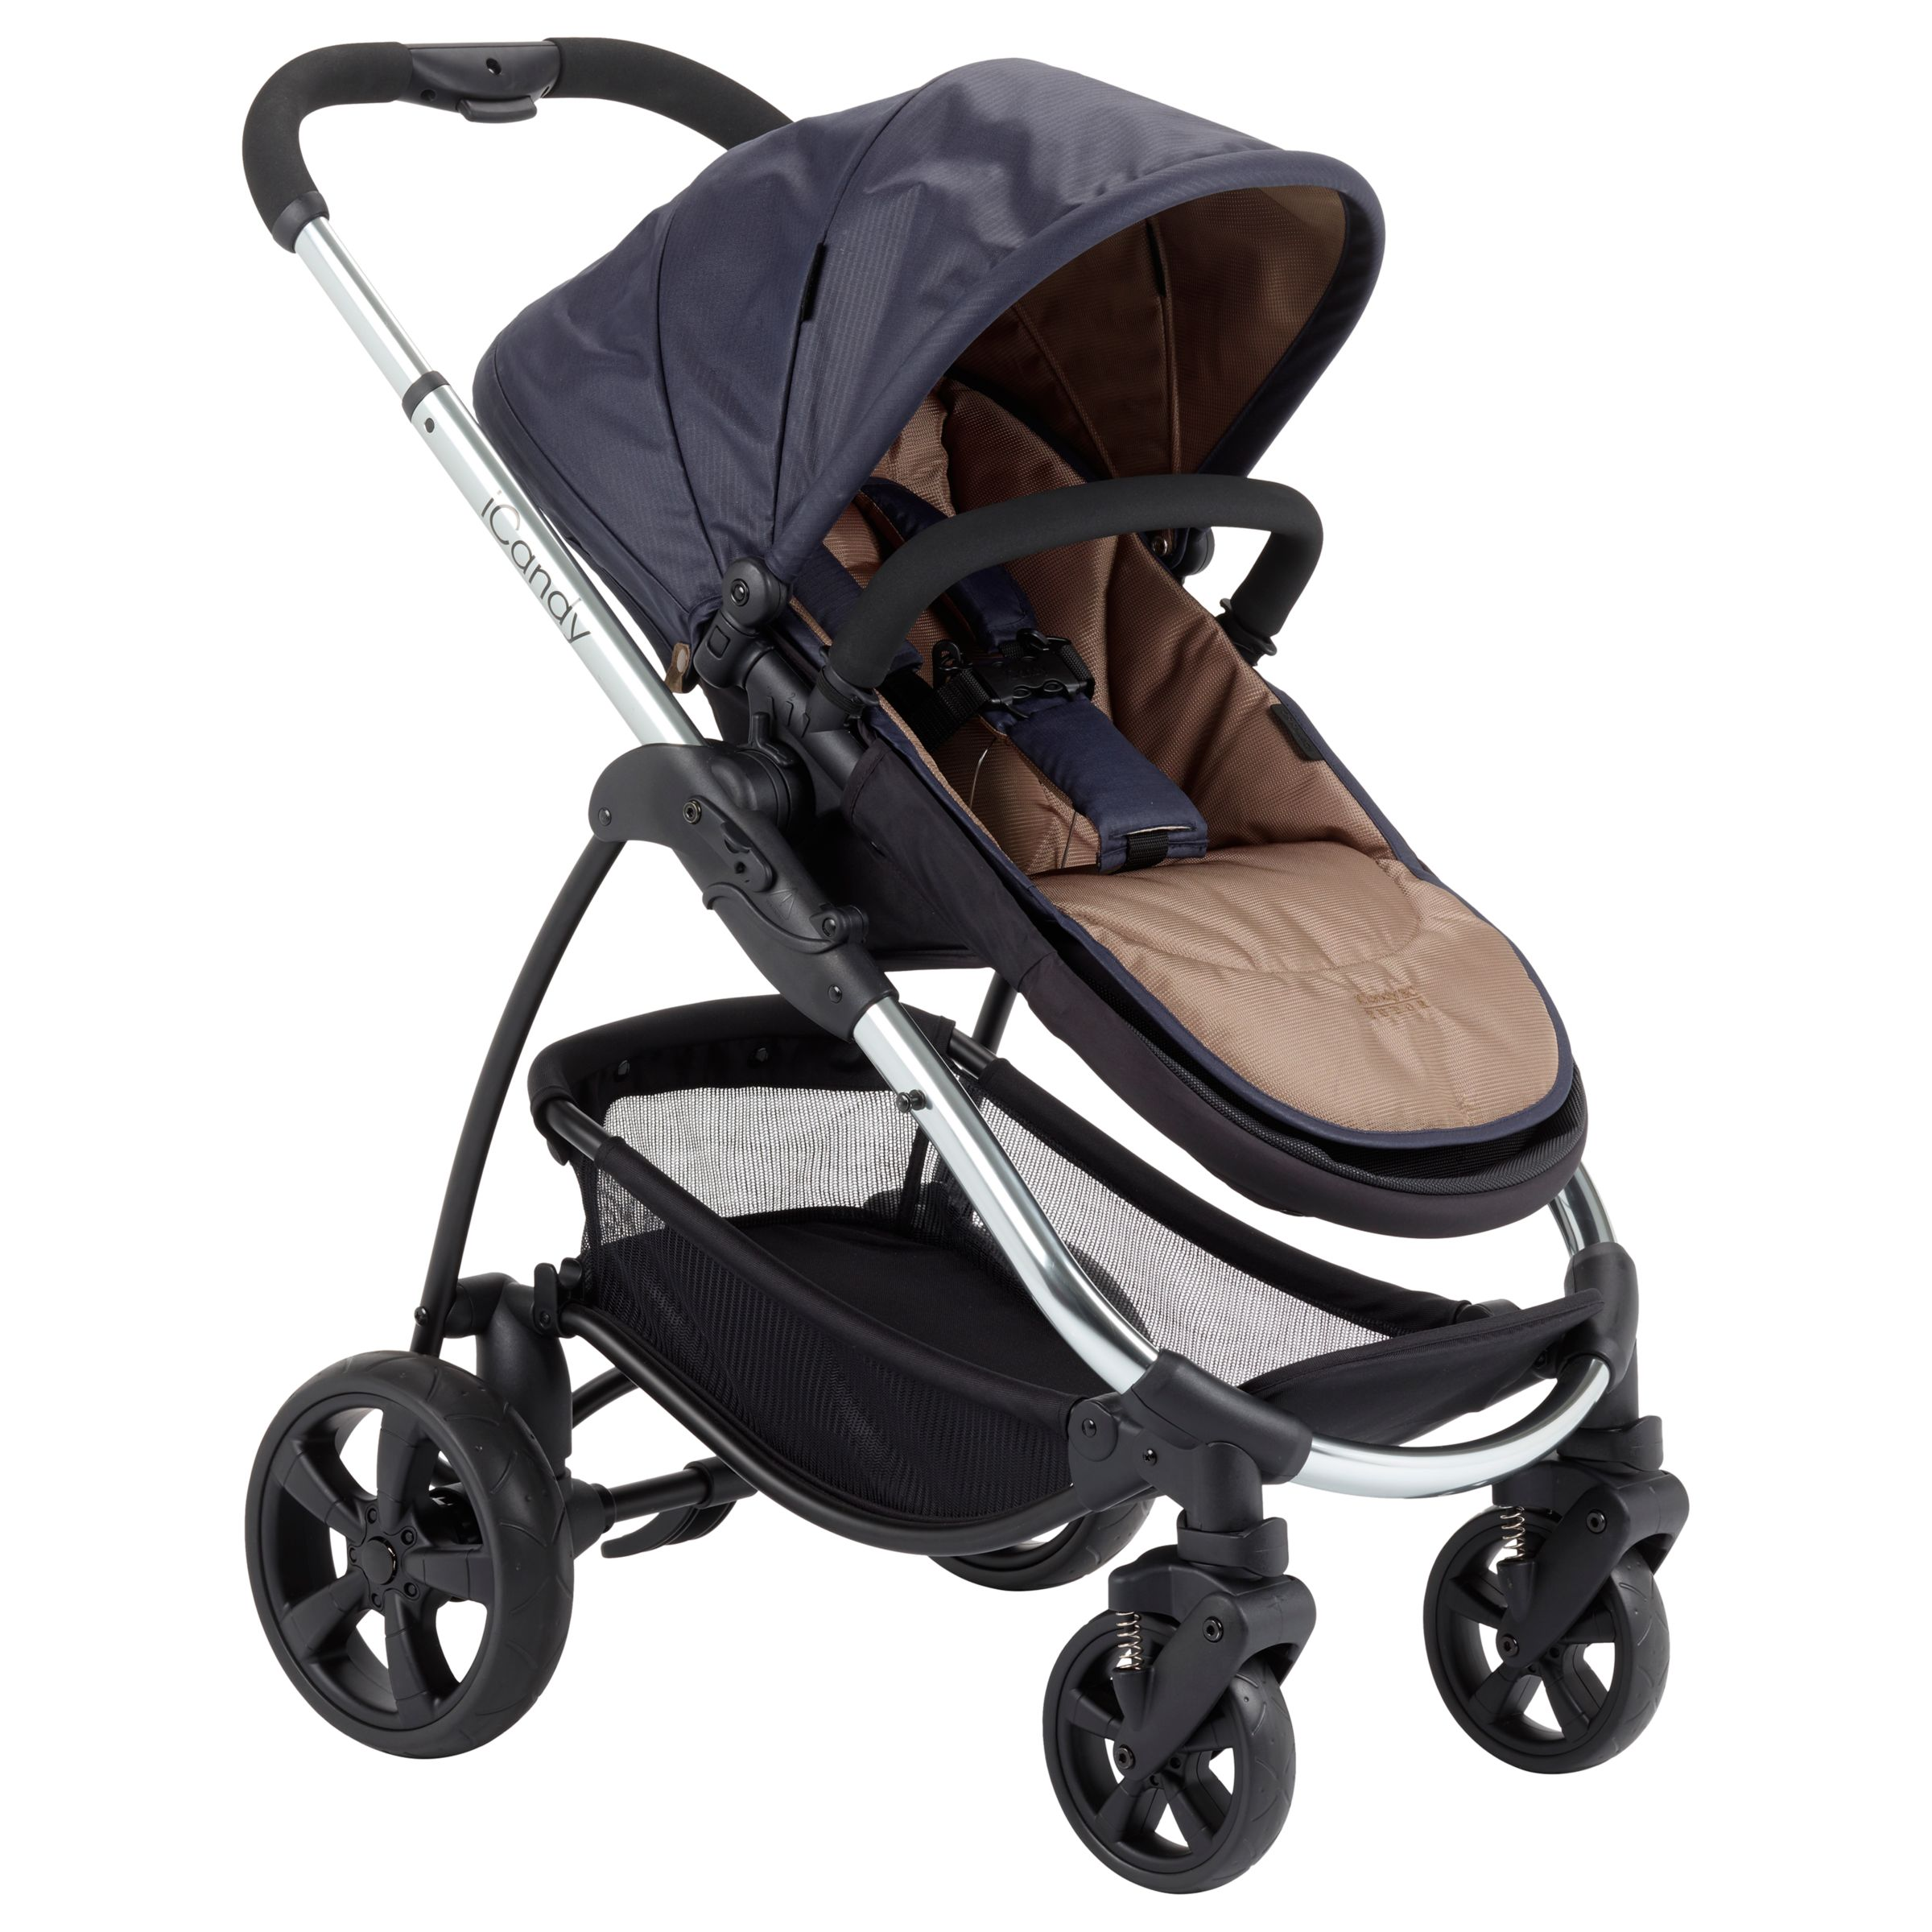 iCandy iCandy Strawberry Style Pushchair with Chrome Chassis & Carrycot, Tudor